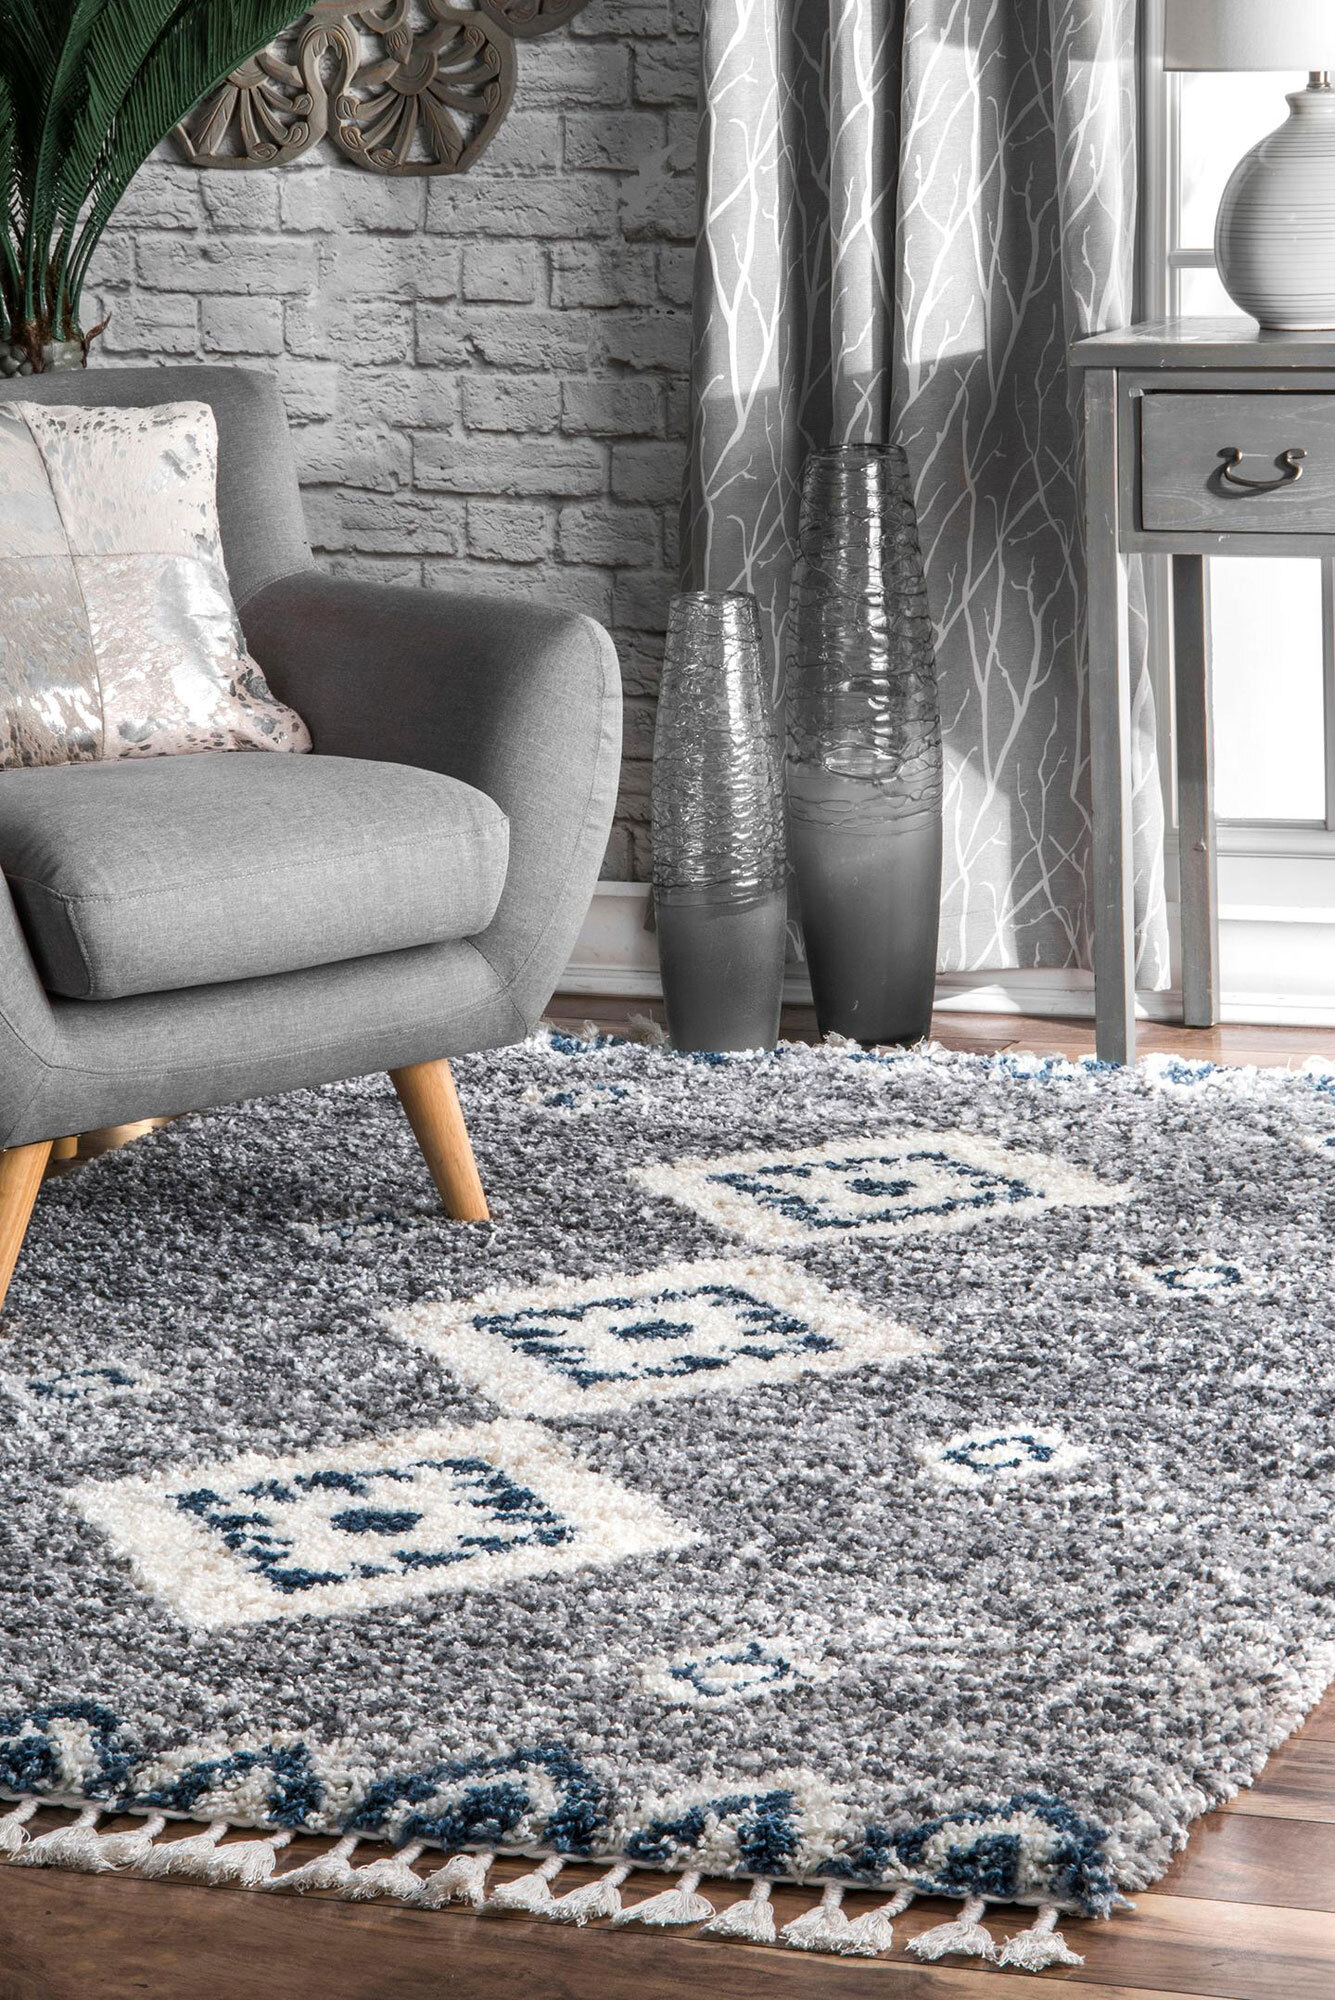 Charles Moroccan Shaggy Rug(Size 150 x 80cm)